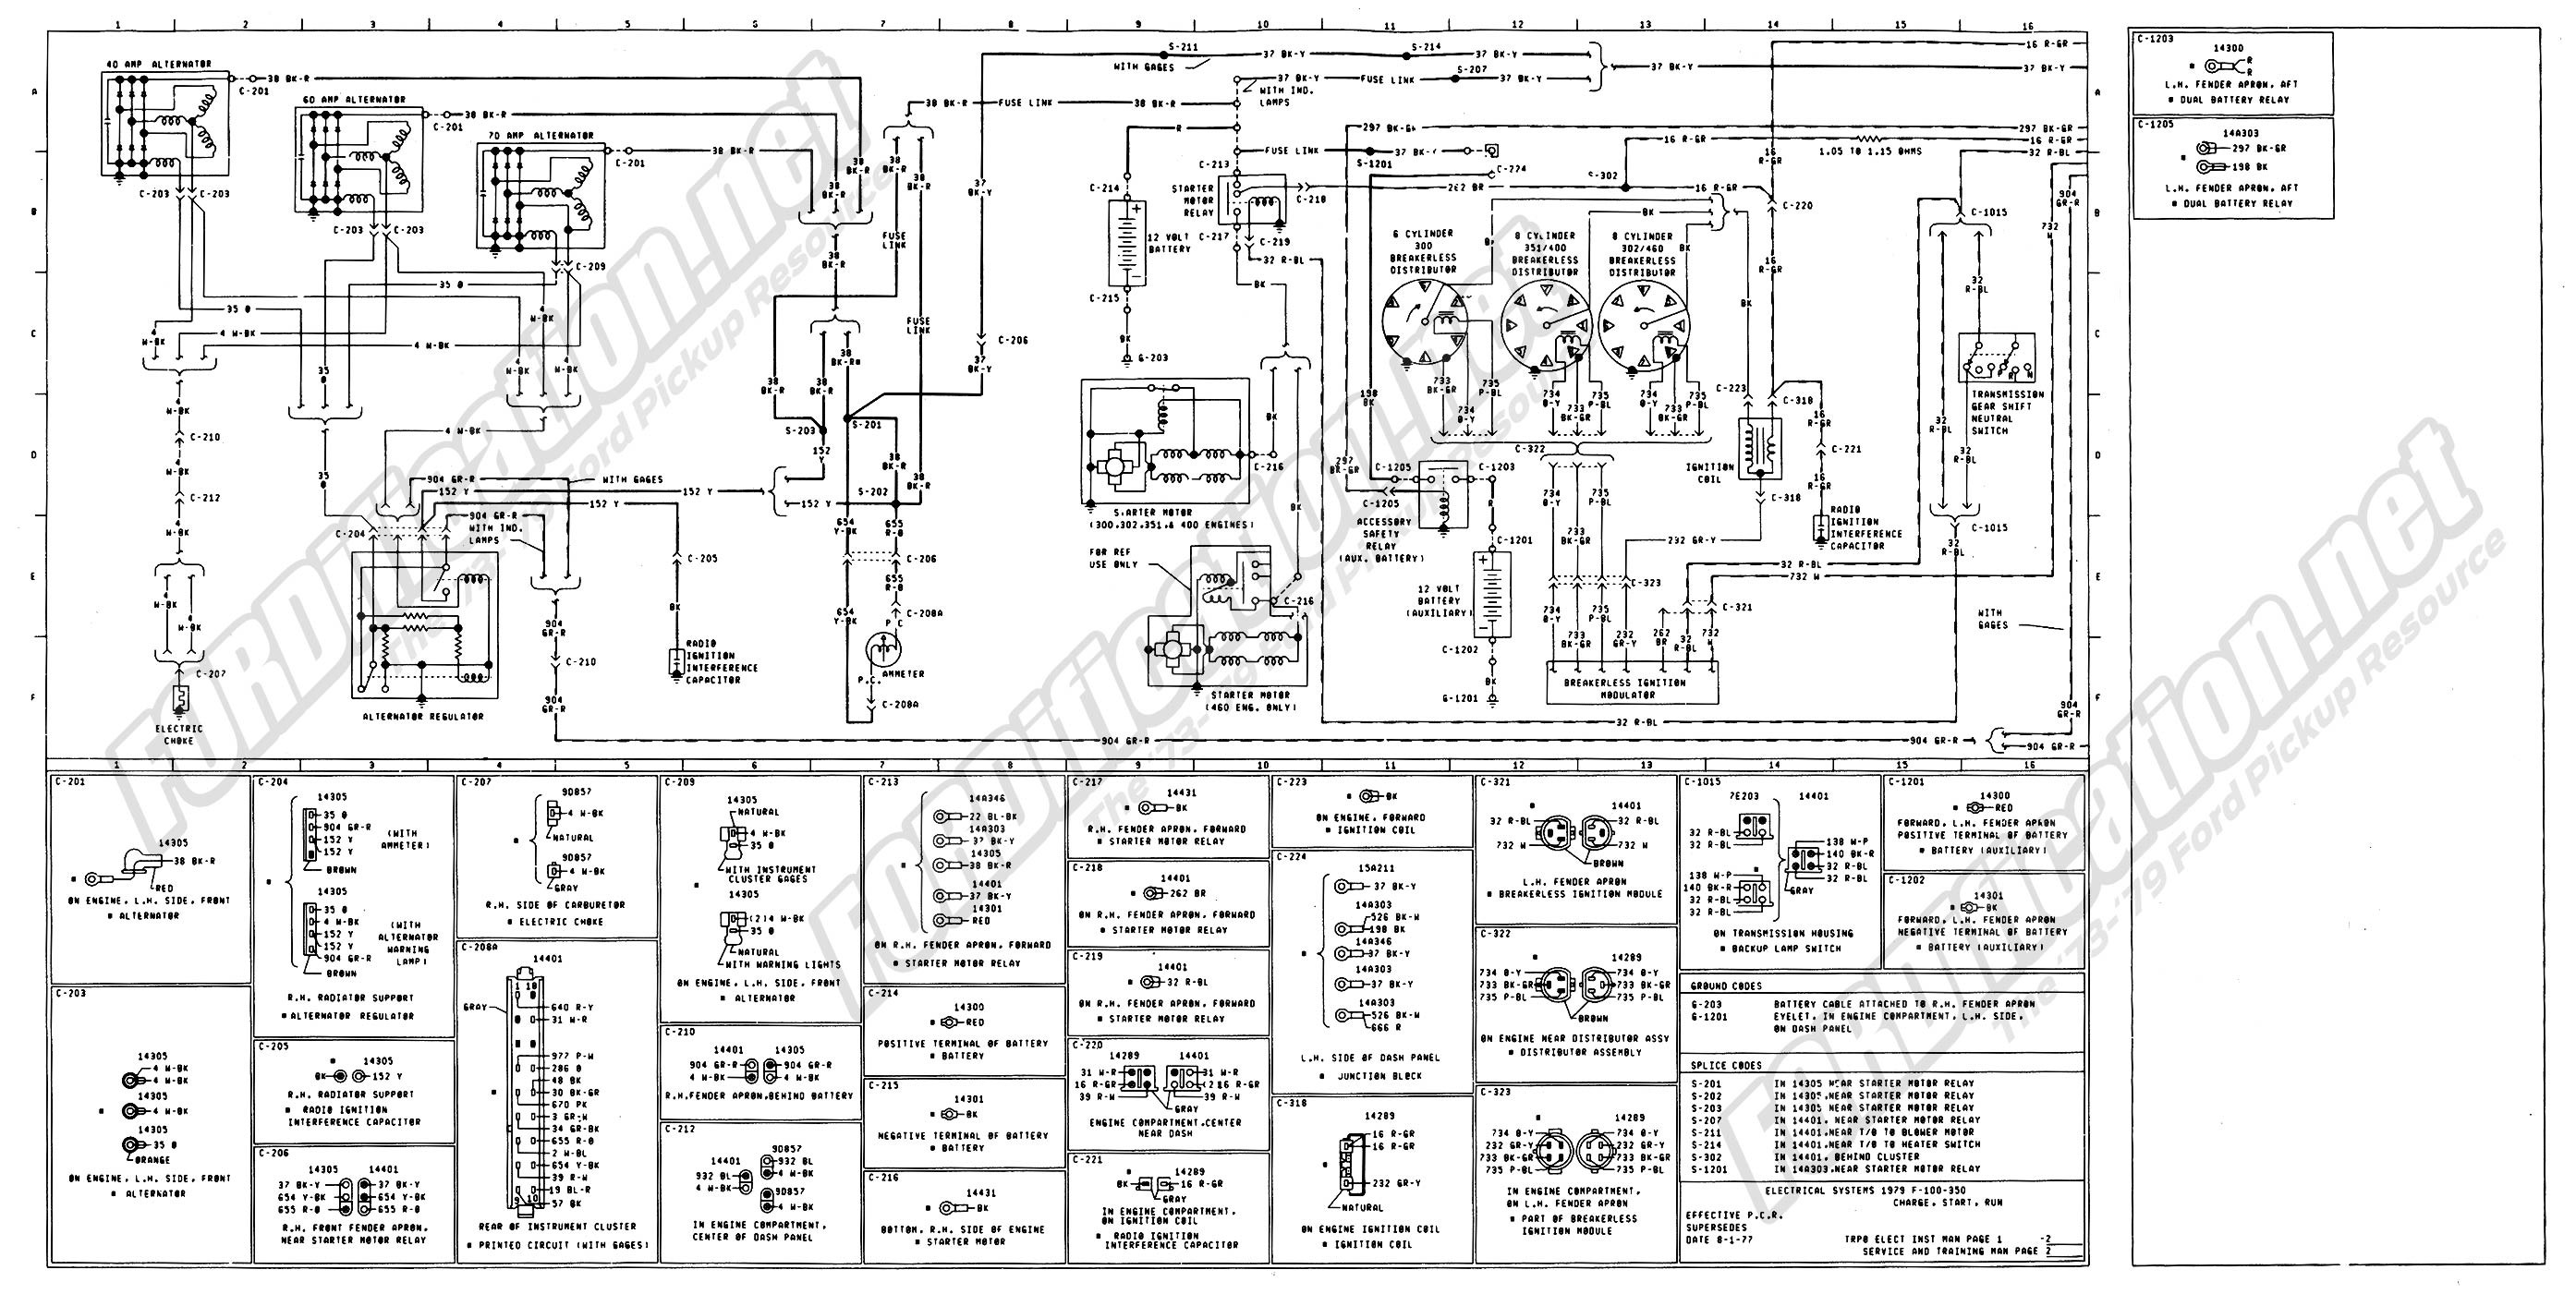 1978 Ford Truck Wiring Harness Wiring Diagram Sockets Tools B Sockets Tools B Nbalife It